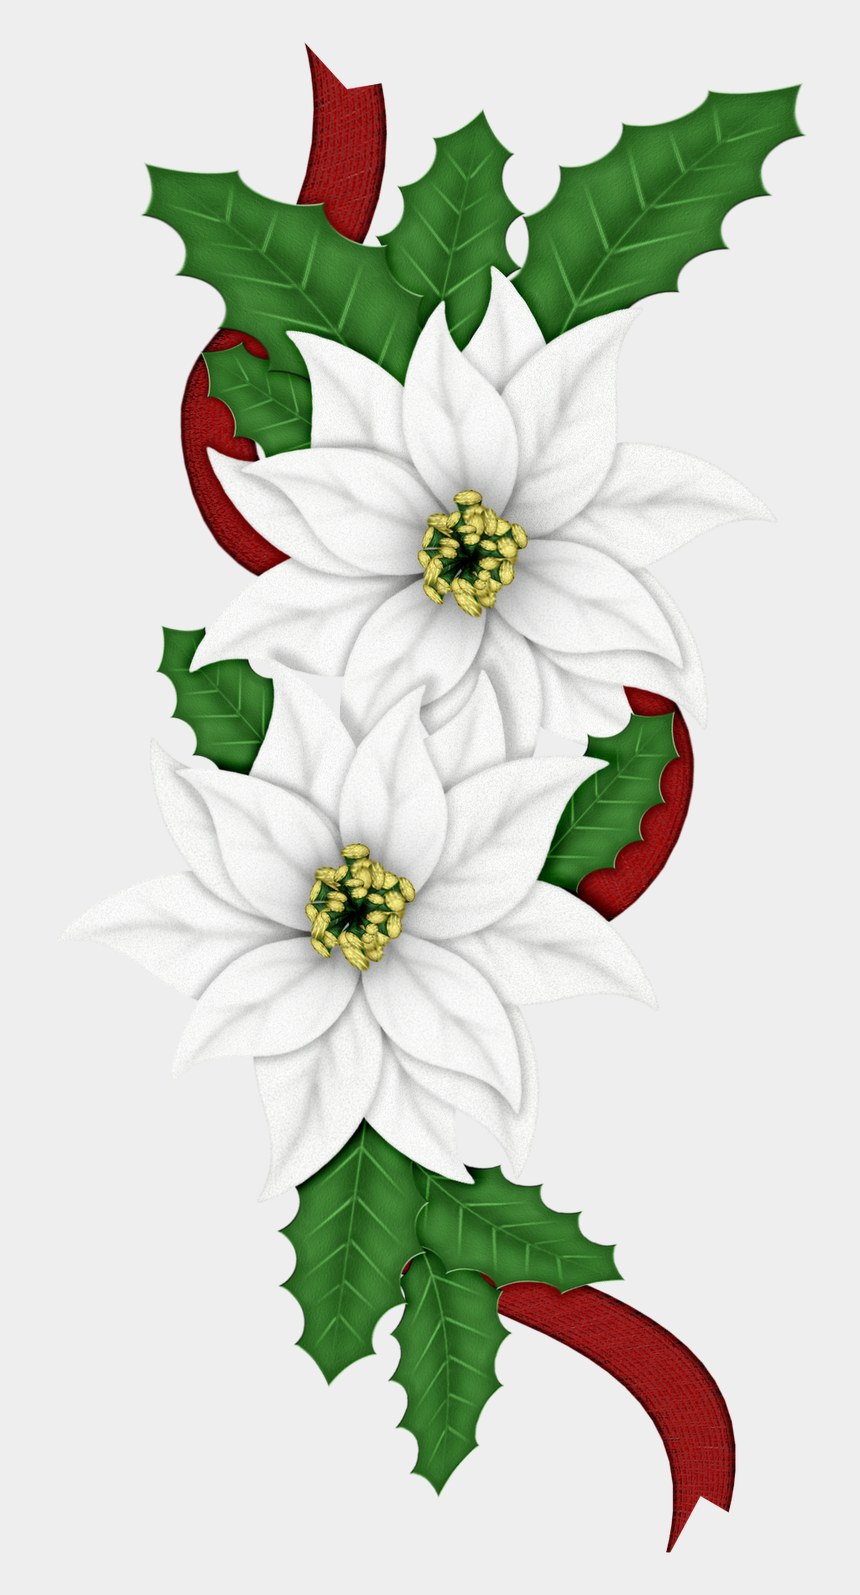 poinsettias clipart, Cartoons - Edelweiss Png - Christmas Day